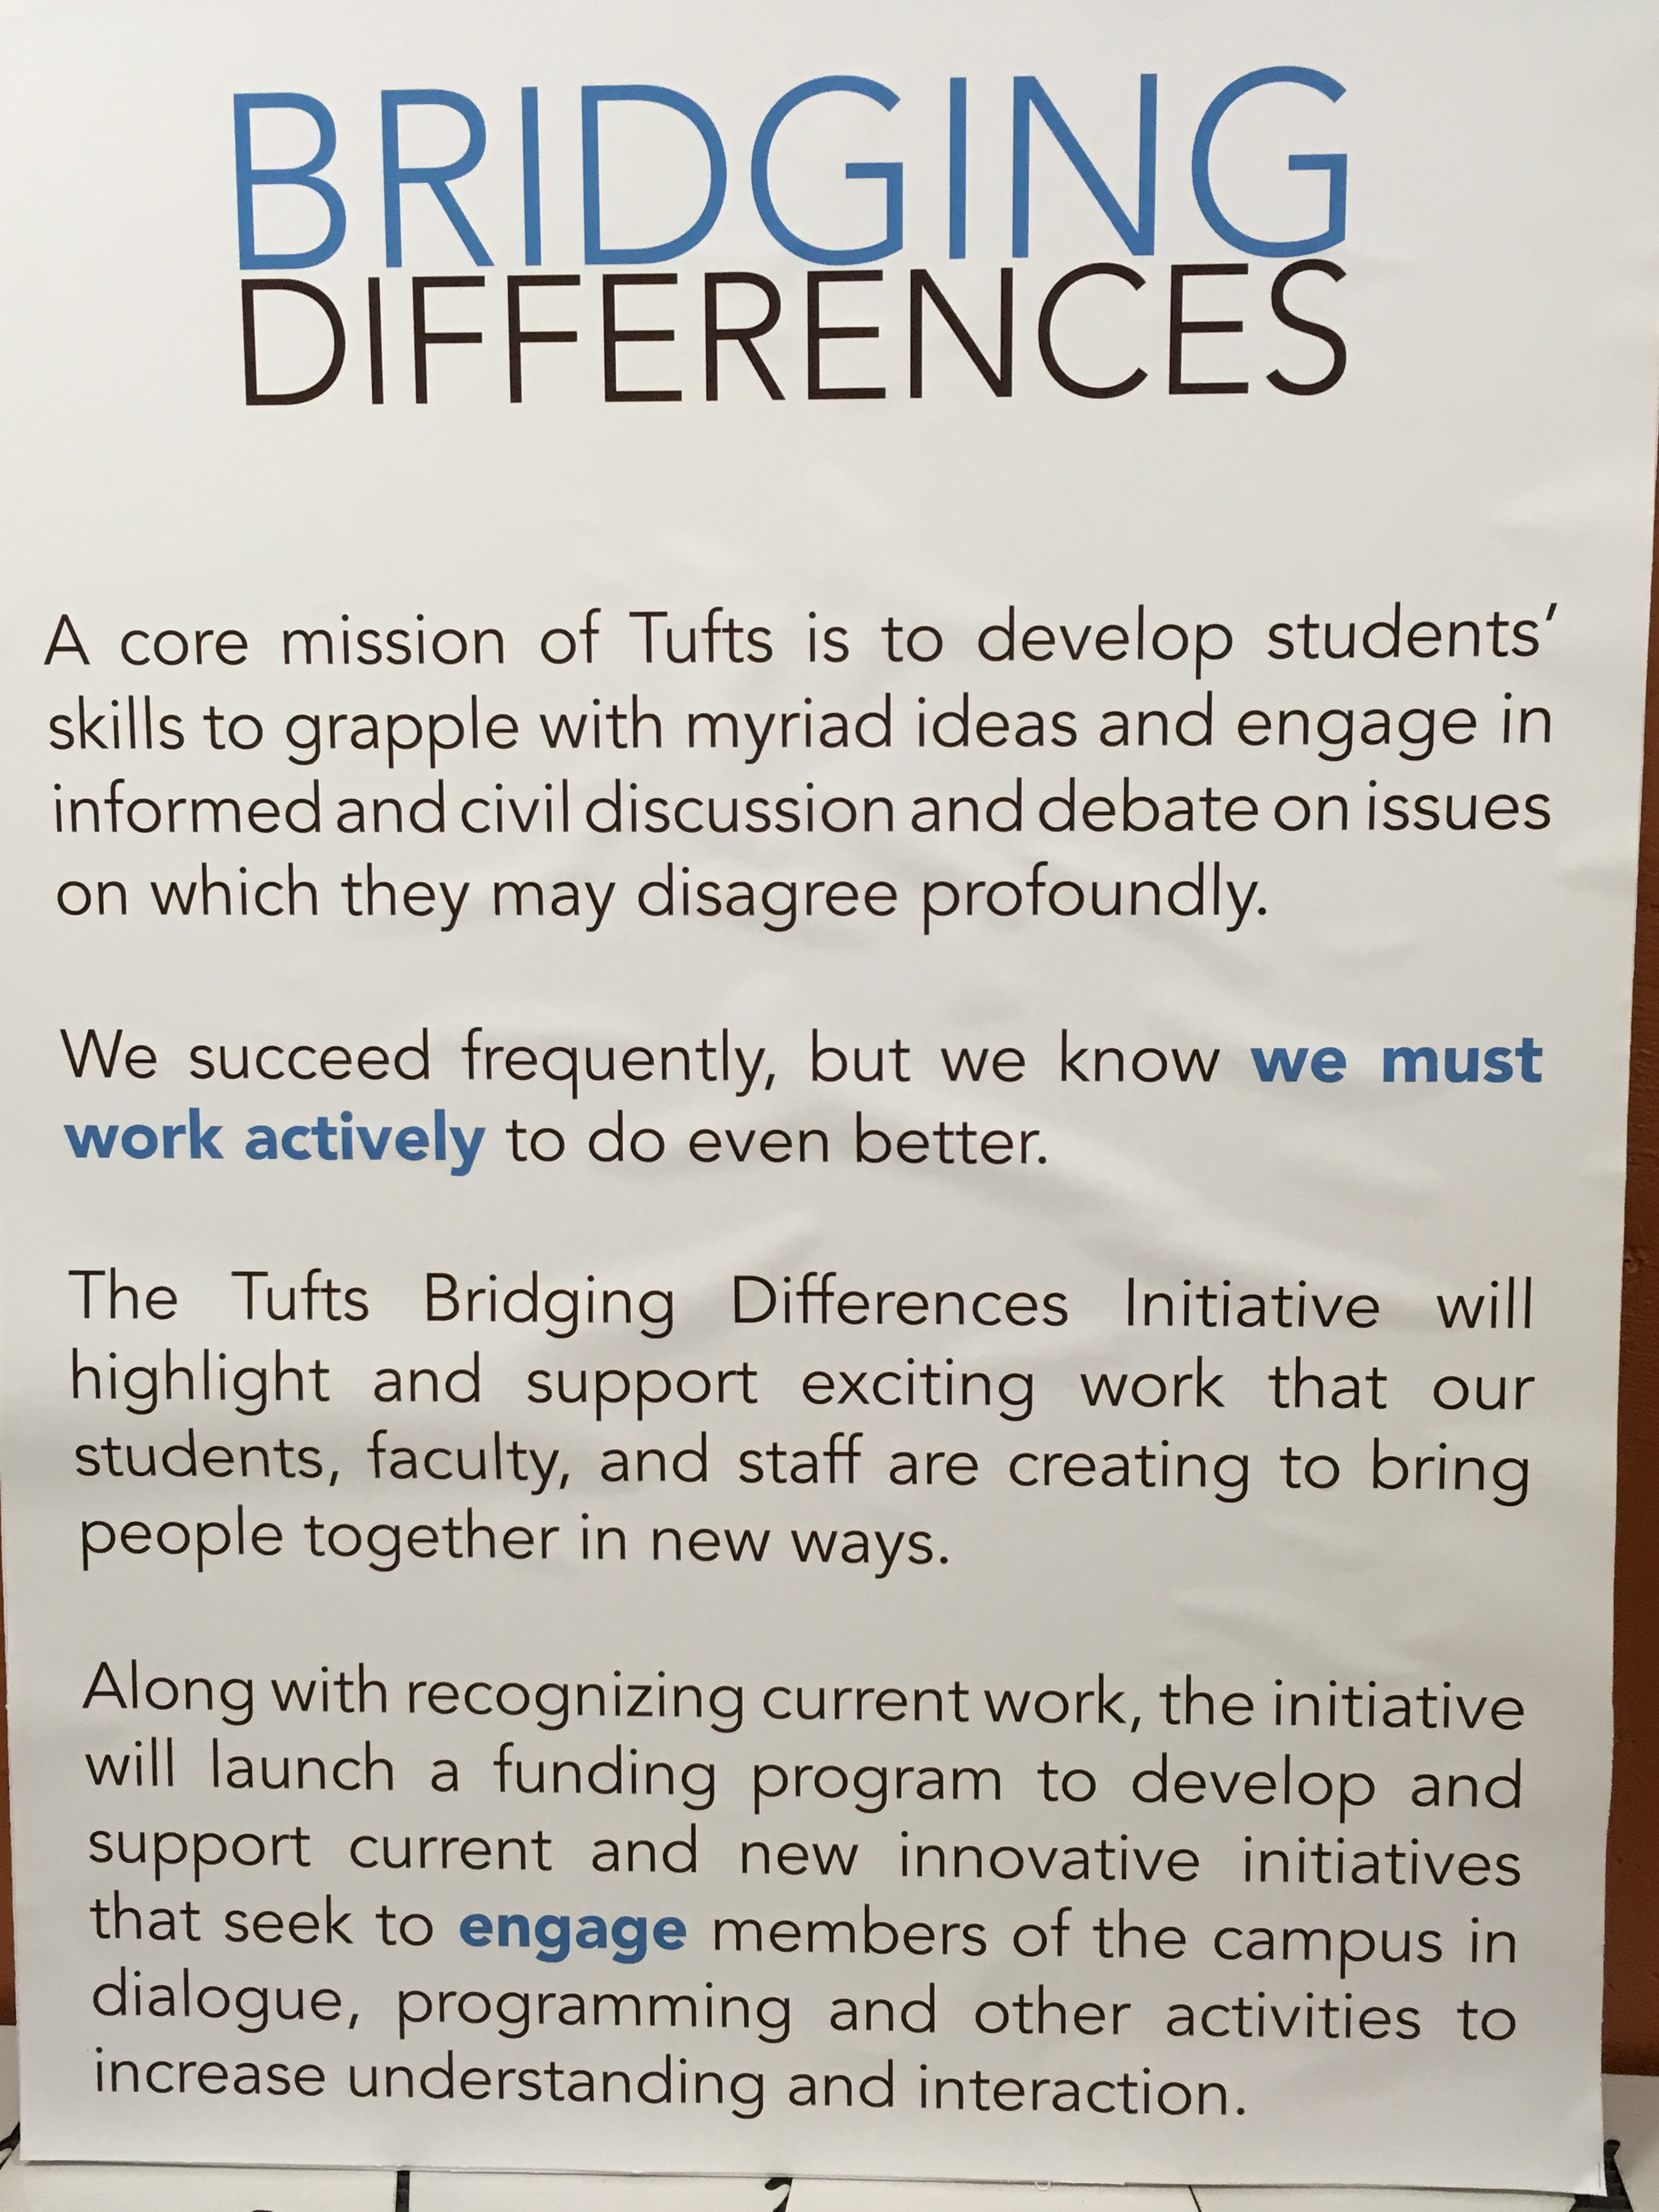 bridging differences poster